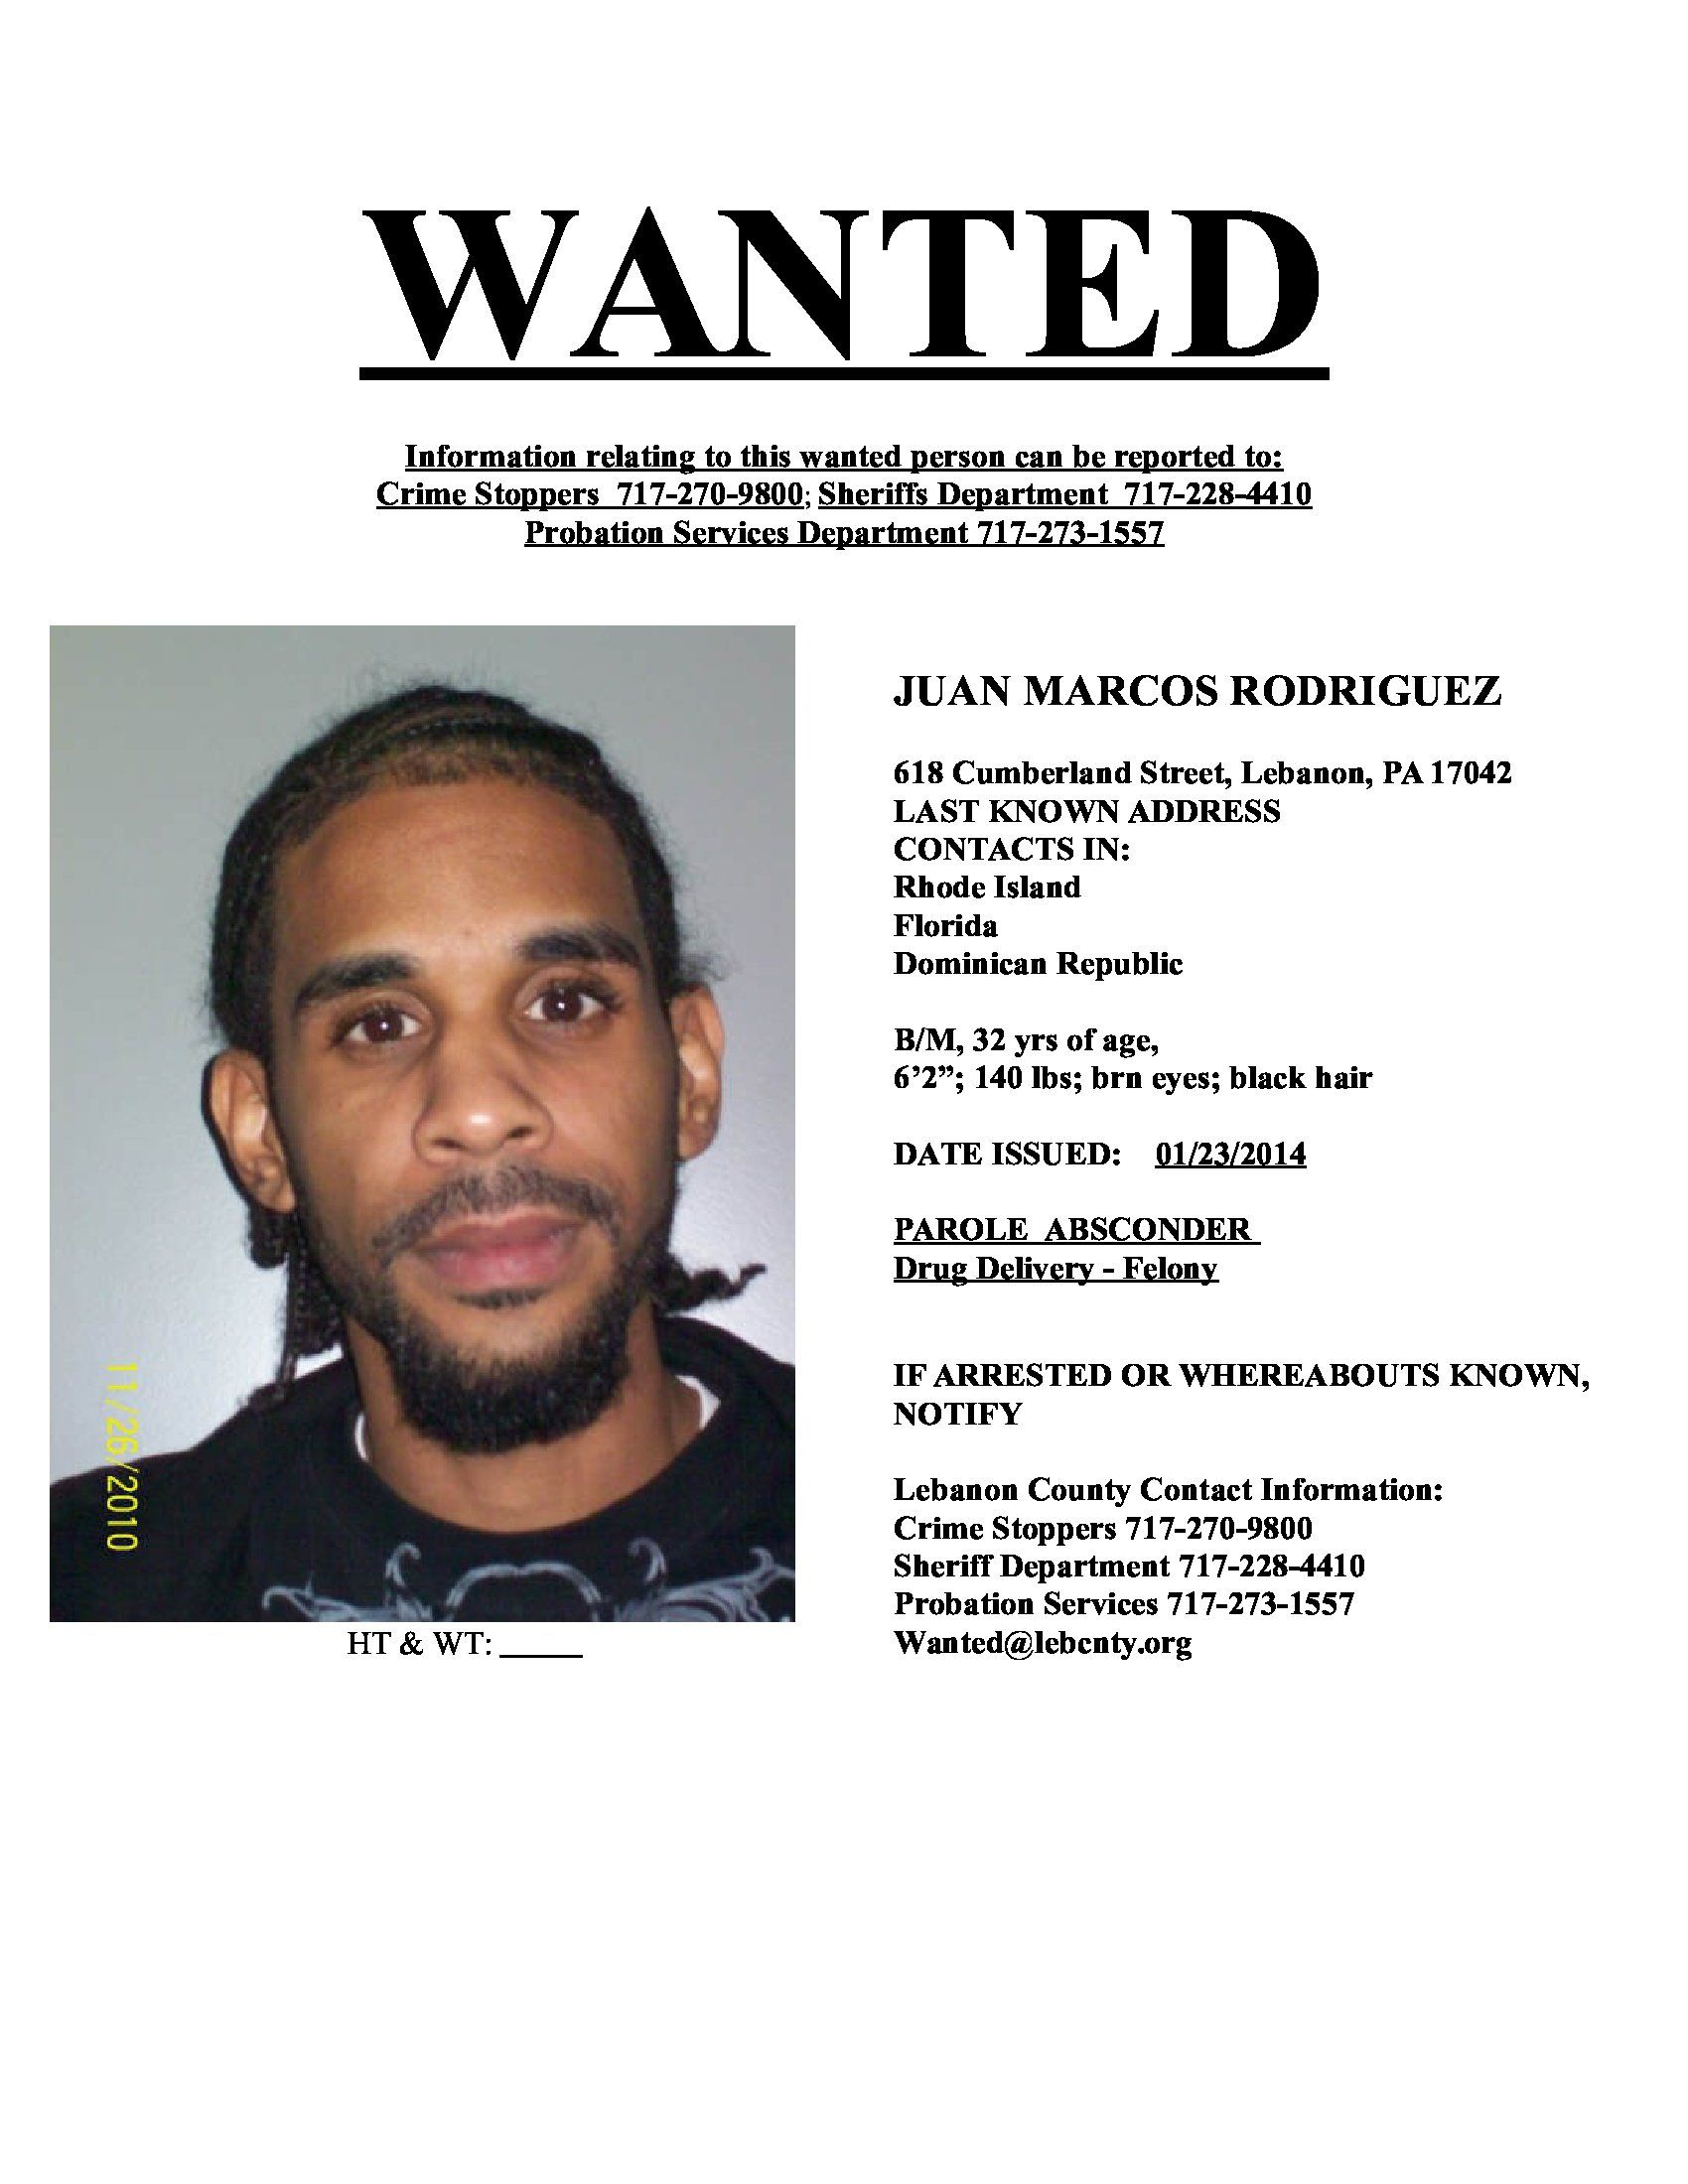 The mugshots and information are provided by Lebanon County